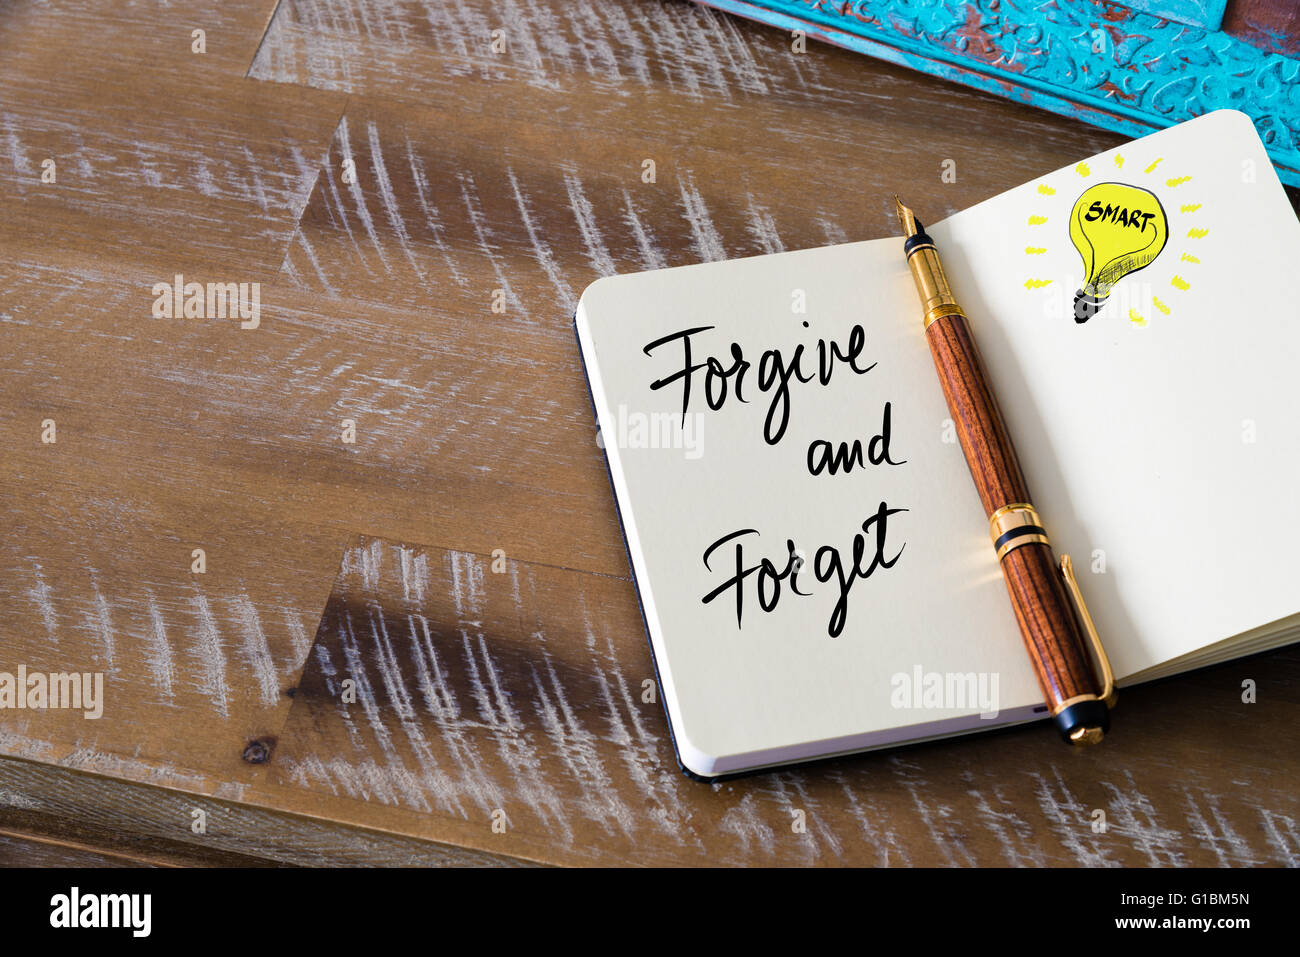 Handwritten text Forgive and Forget with fountain pen on notebook. Concept image with copy space available. - Stock Image